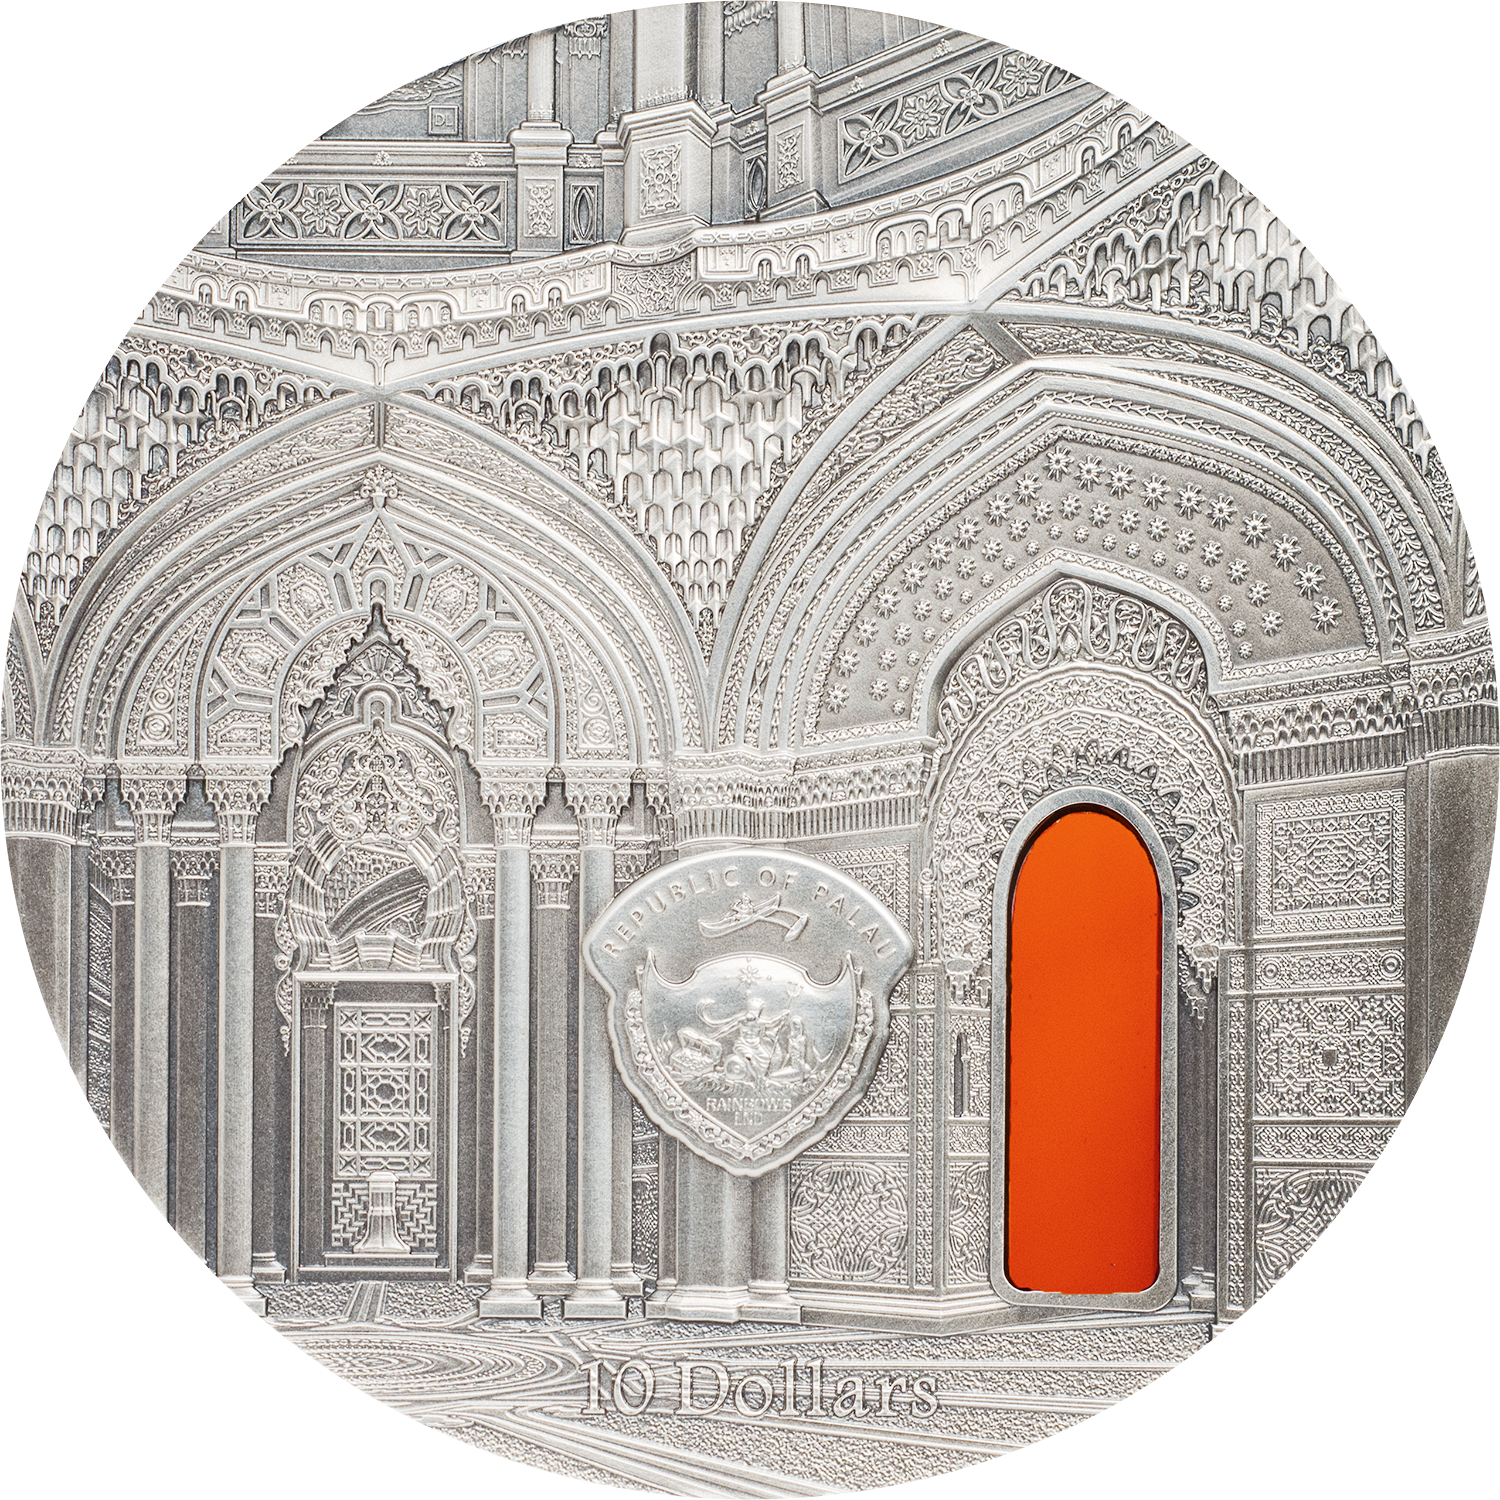 Palau - 2018 - 10 Dollars - Tiffany Art Castle of Sammezzano 2oz Version